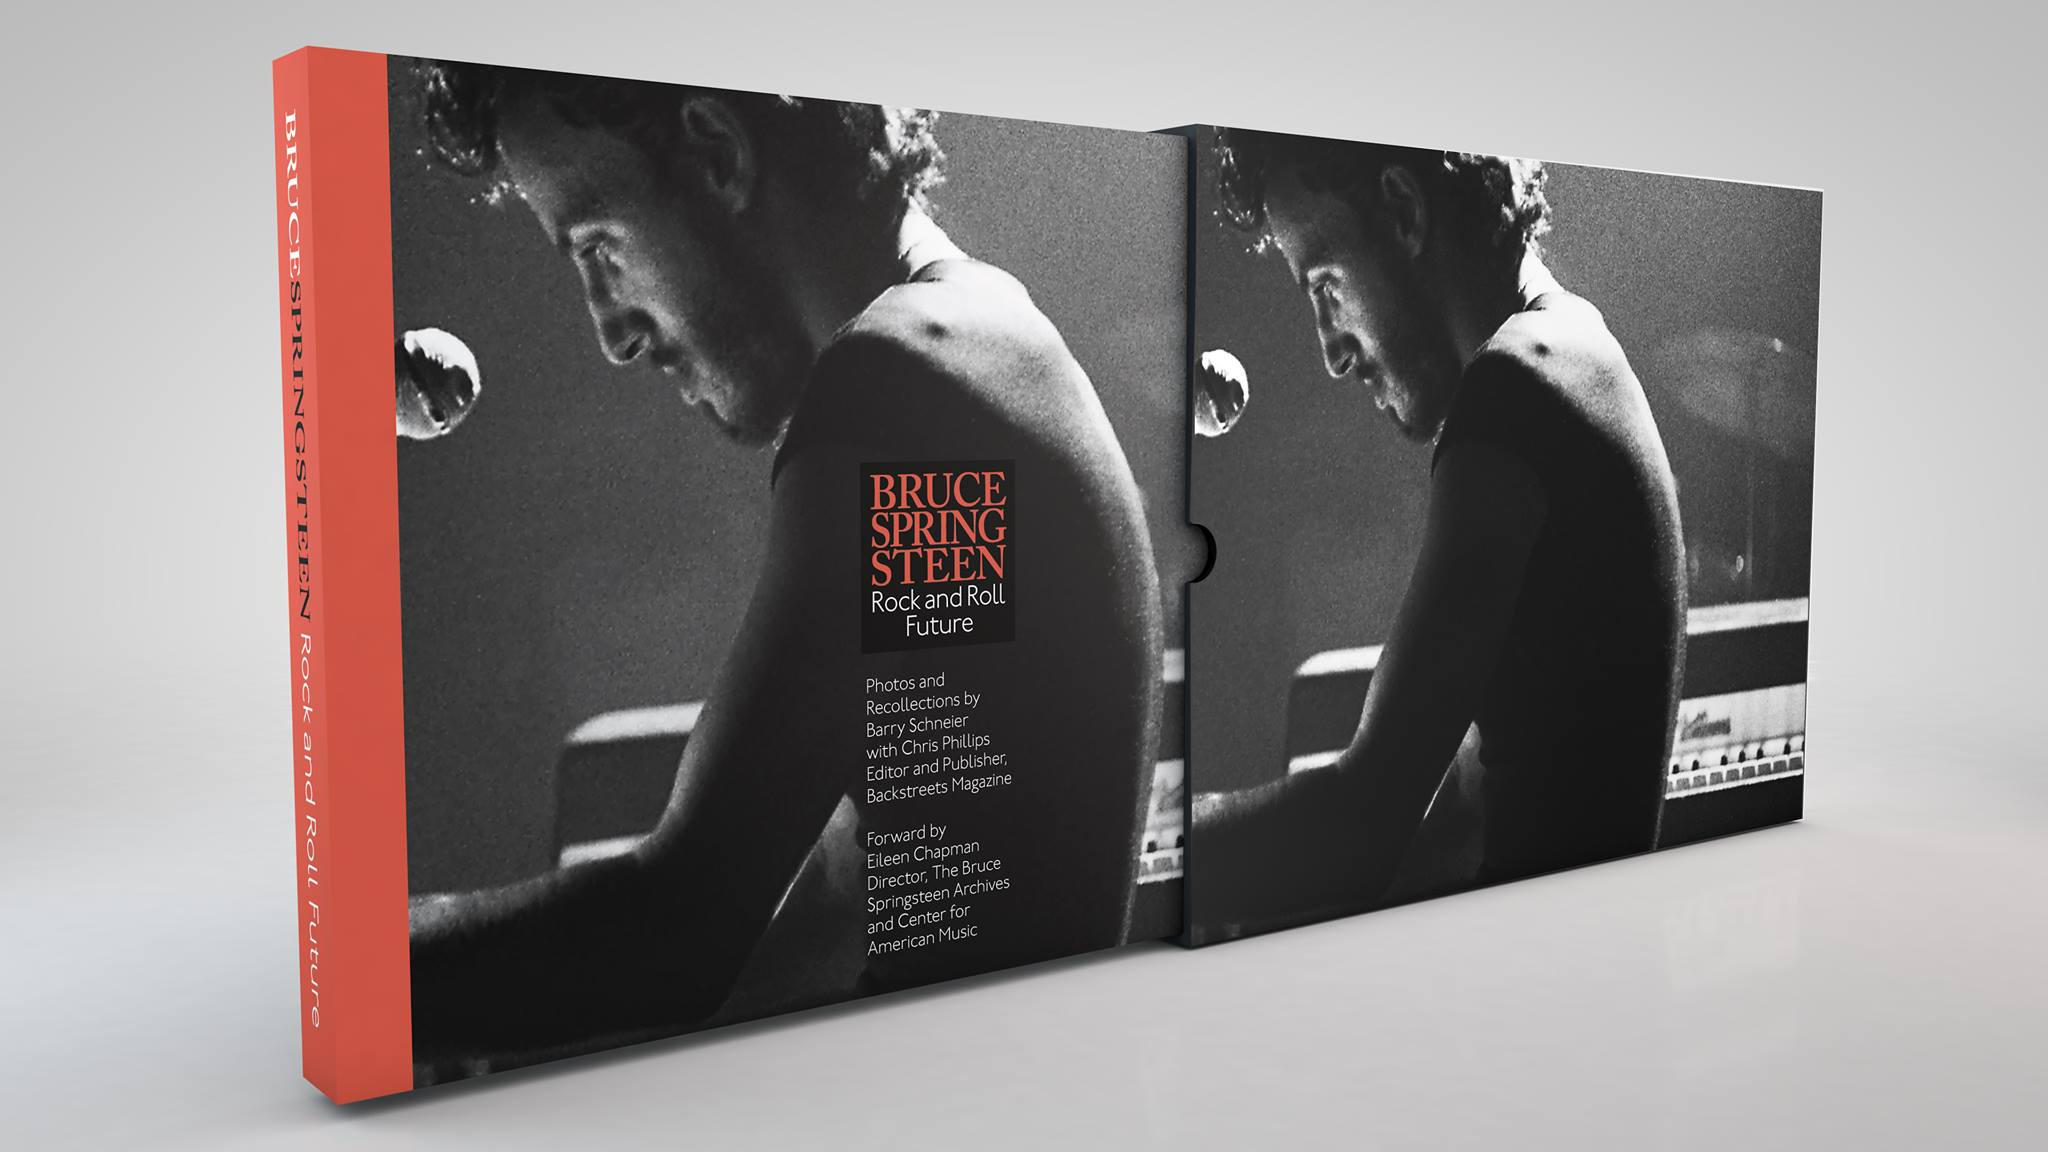 Cover with Limited Edition Slipcase